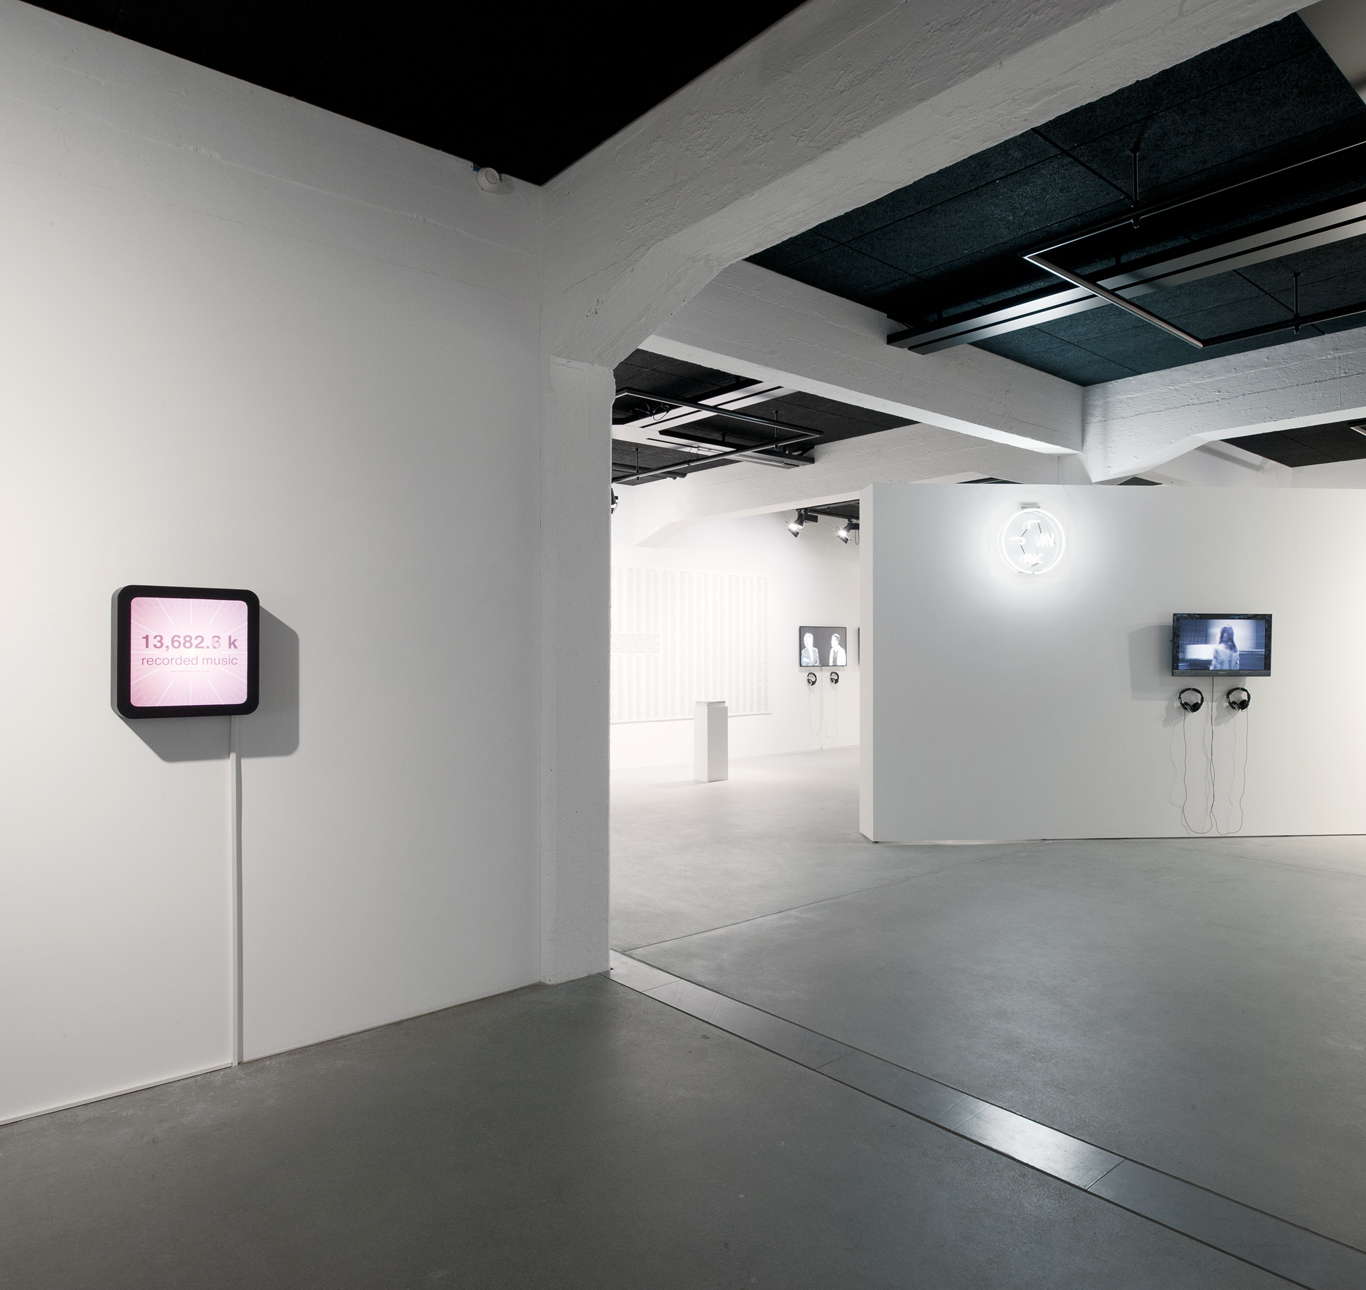 Works by Rafael Lozanno-Hemmer (left) and Jennifer Lyn Morone (near right). Photo: Marco Frauchiger